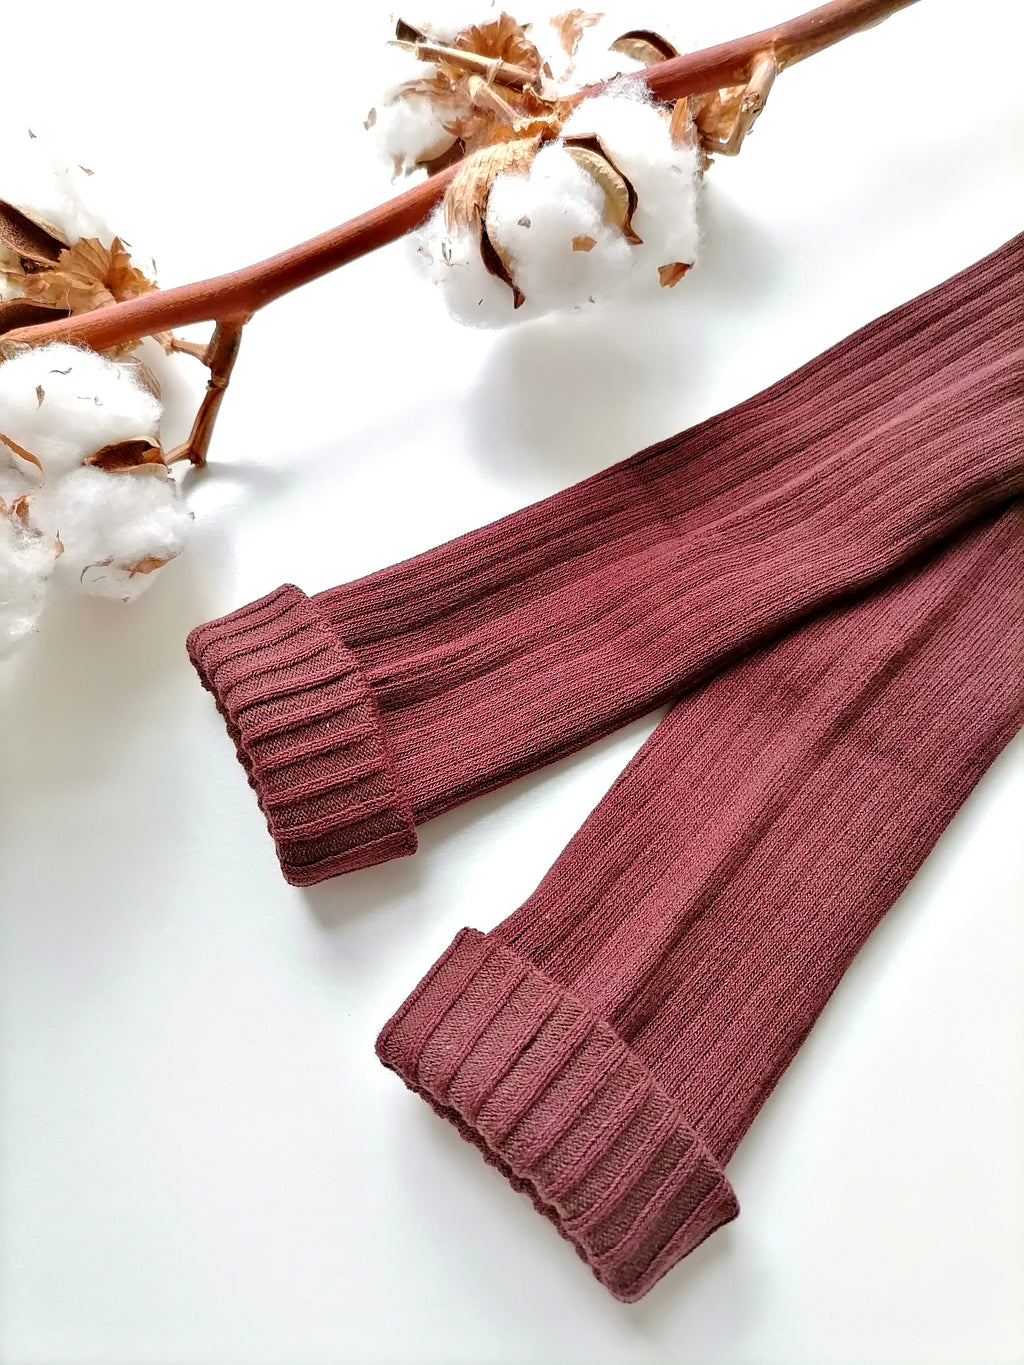 Chunky Knit Rib Leggings - Burgundy